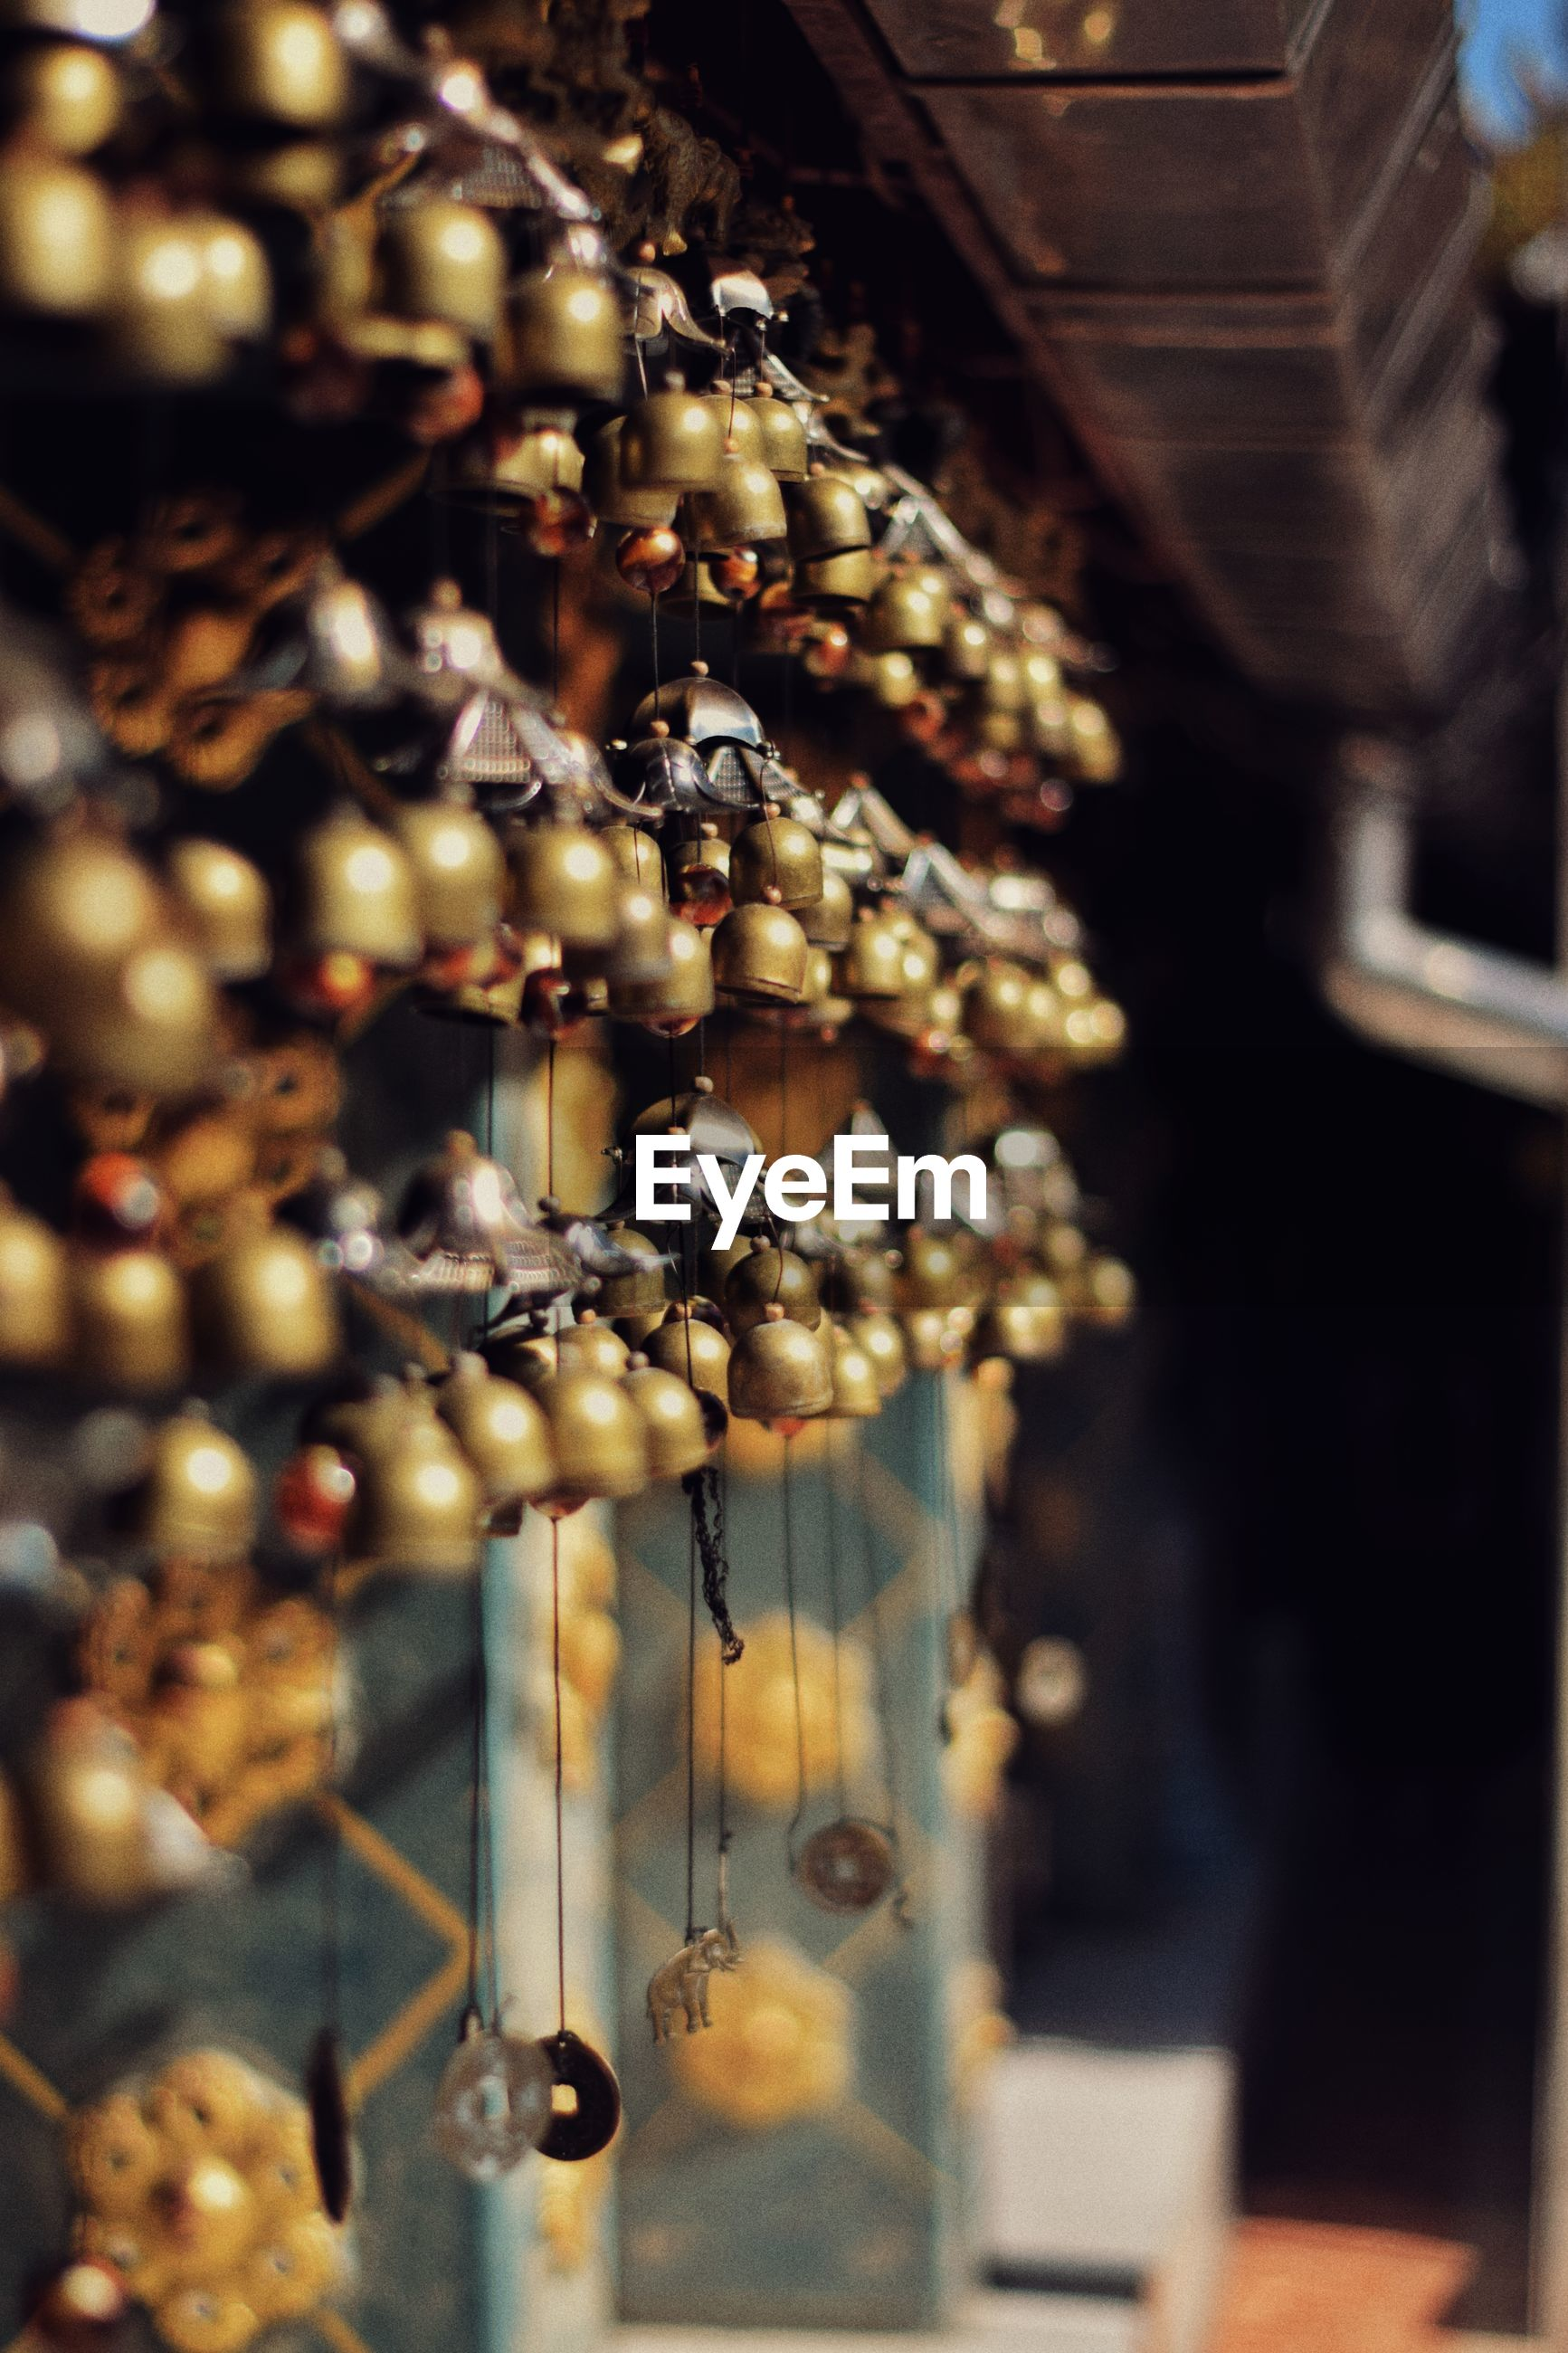 for sale, selective focus, hanging, retail, indoors, no people, close-up, large group of objects, retail display, jewelry, variation, art and craft, choice, store, abundance, market, metal, collection, shopping, focus on foreground, sale, luxury, consumerism